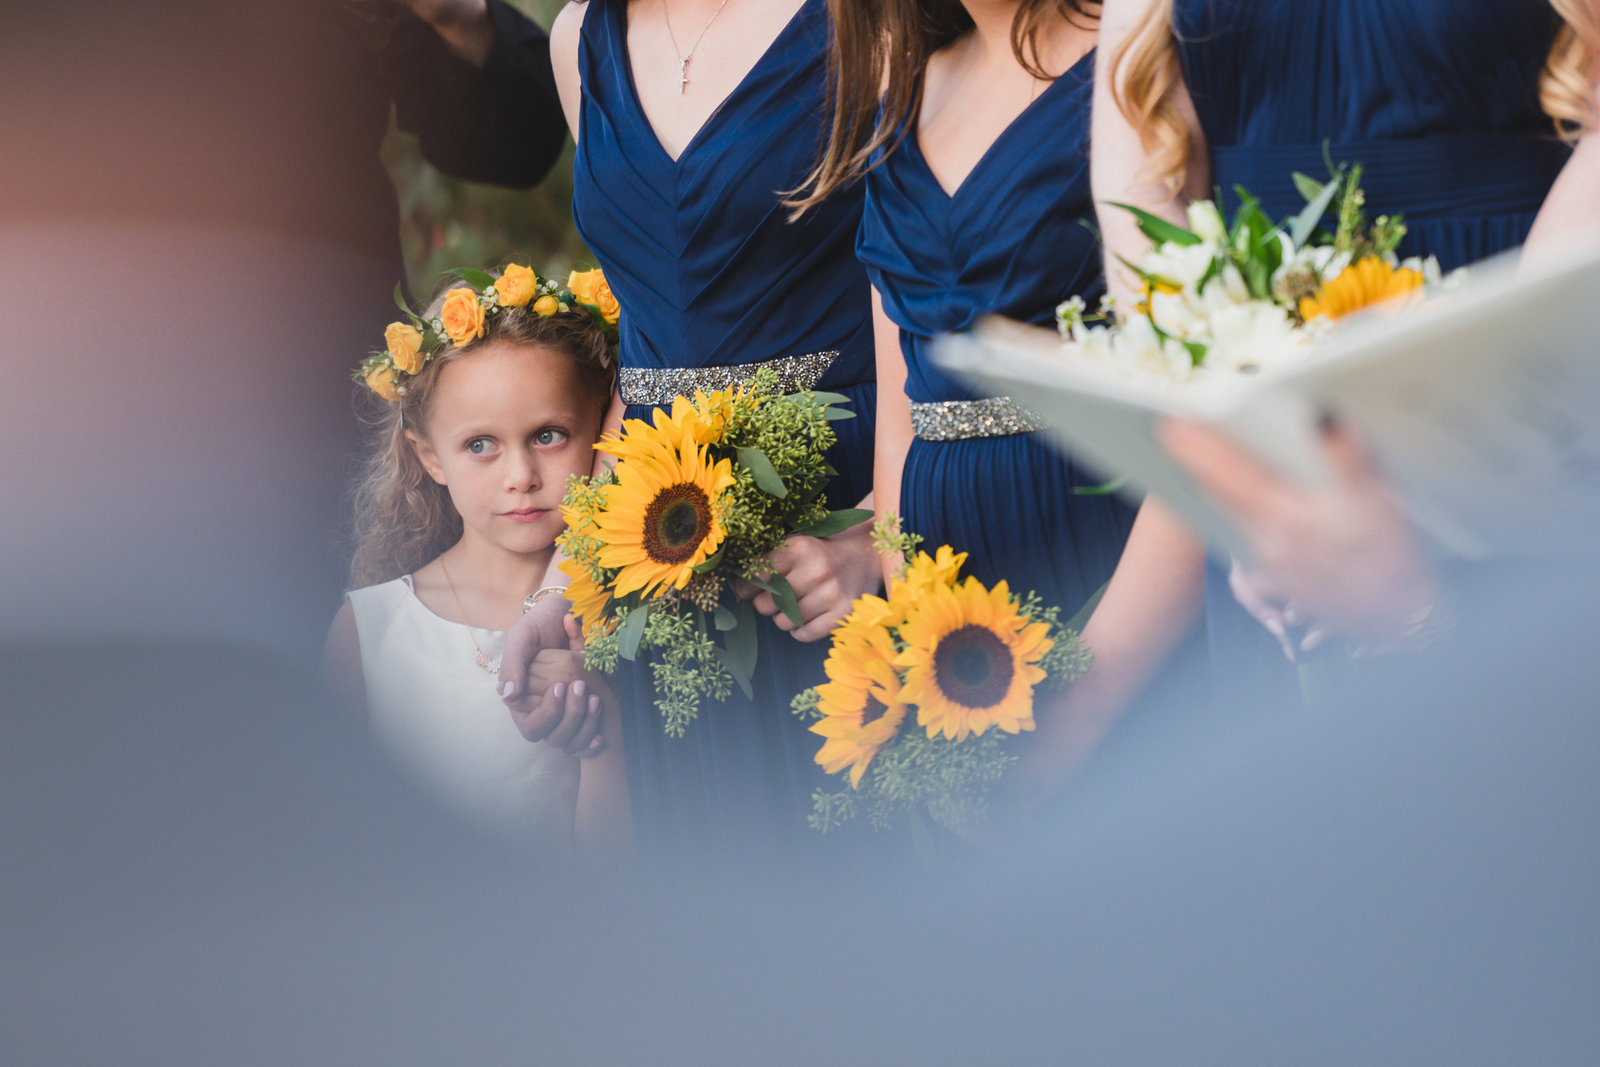 photo of flower girl and bouquets from wedding at Three Village Inn